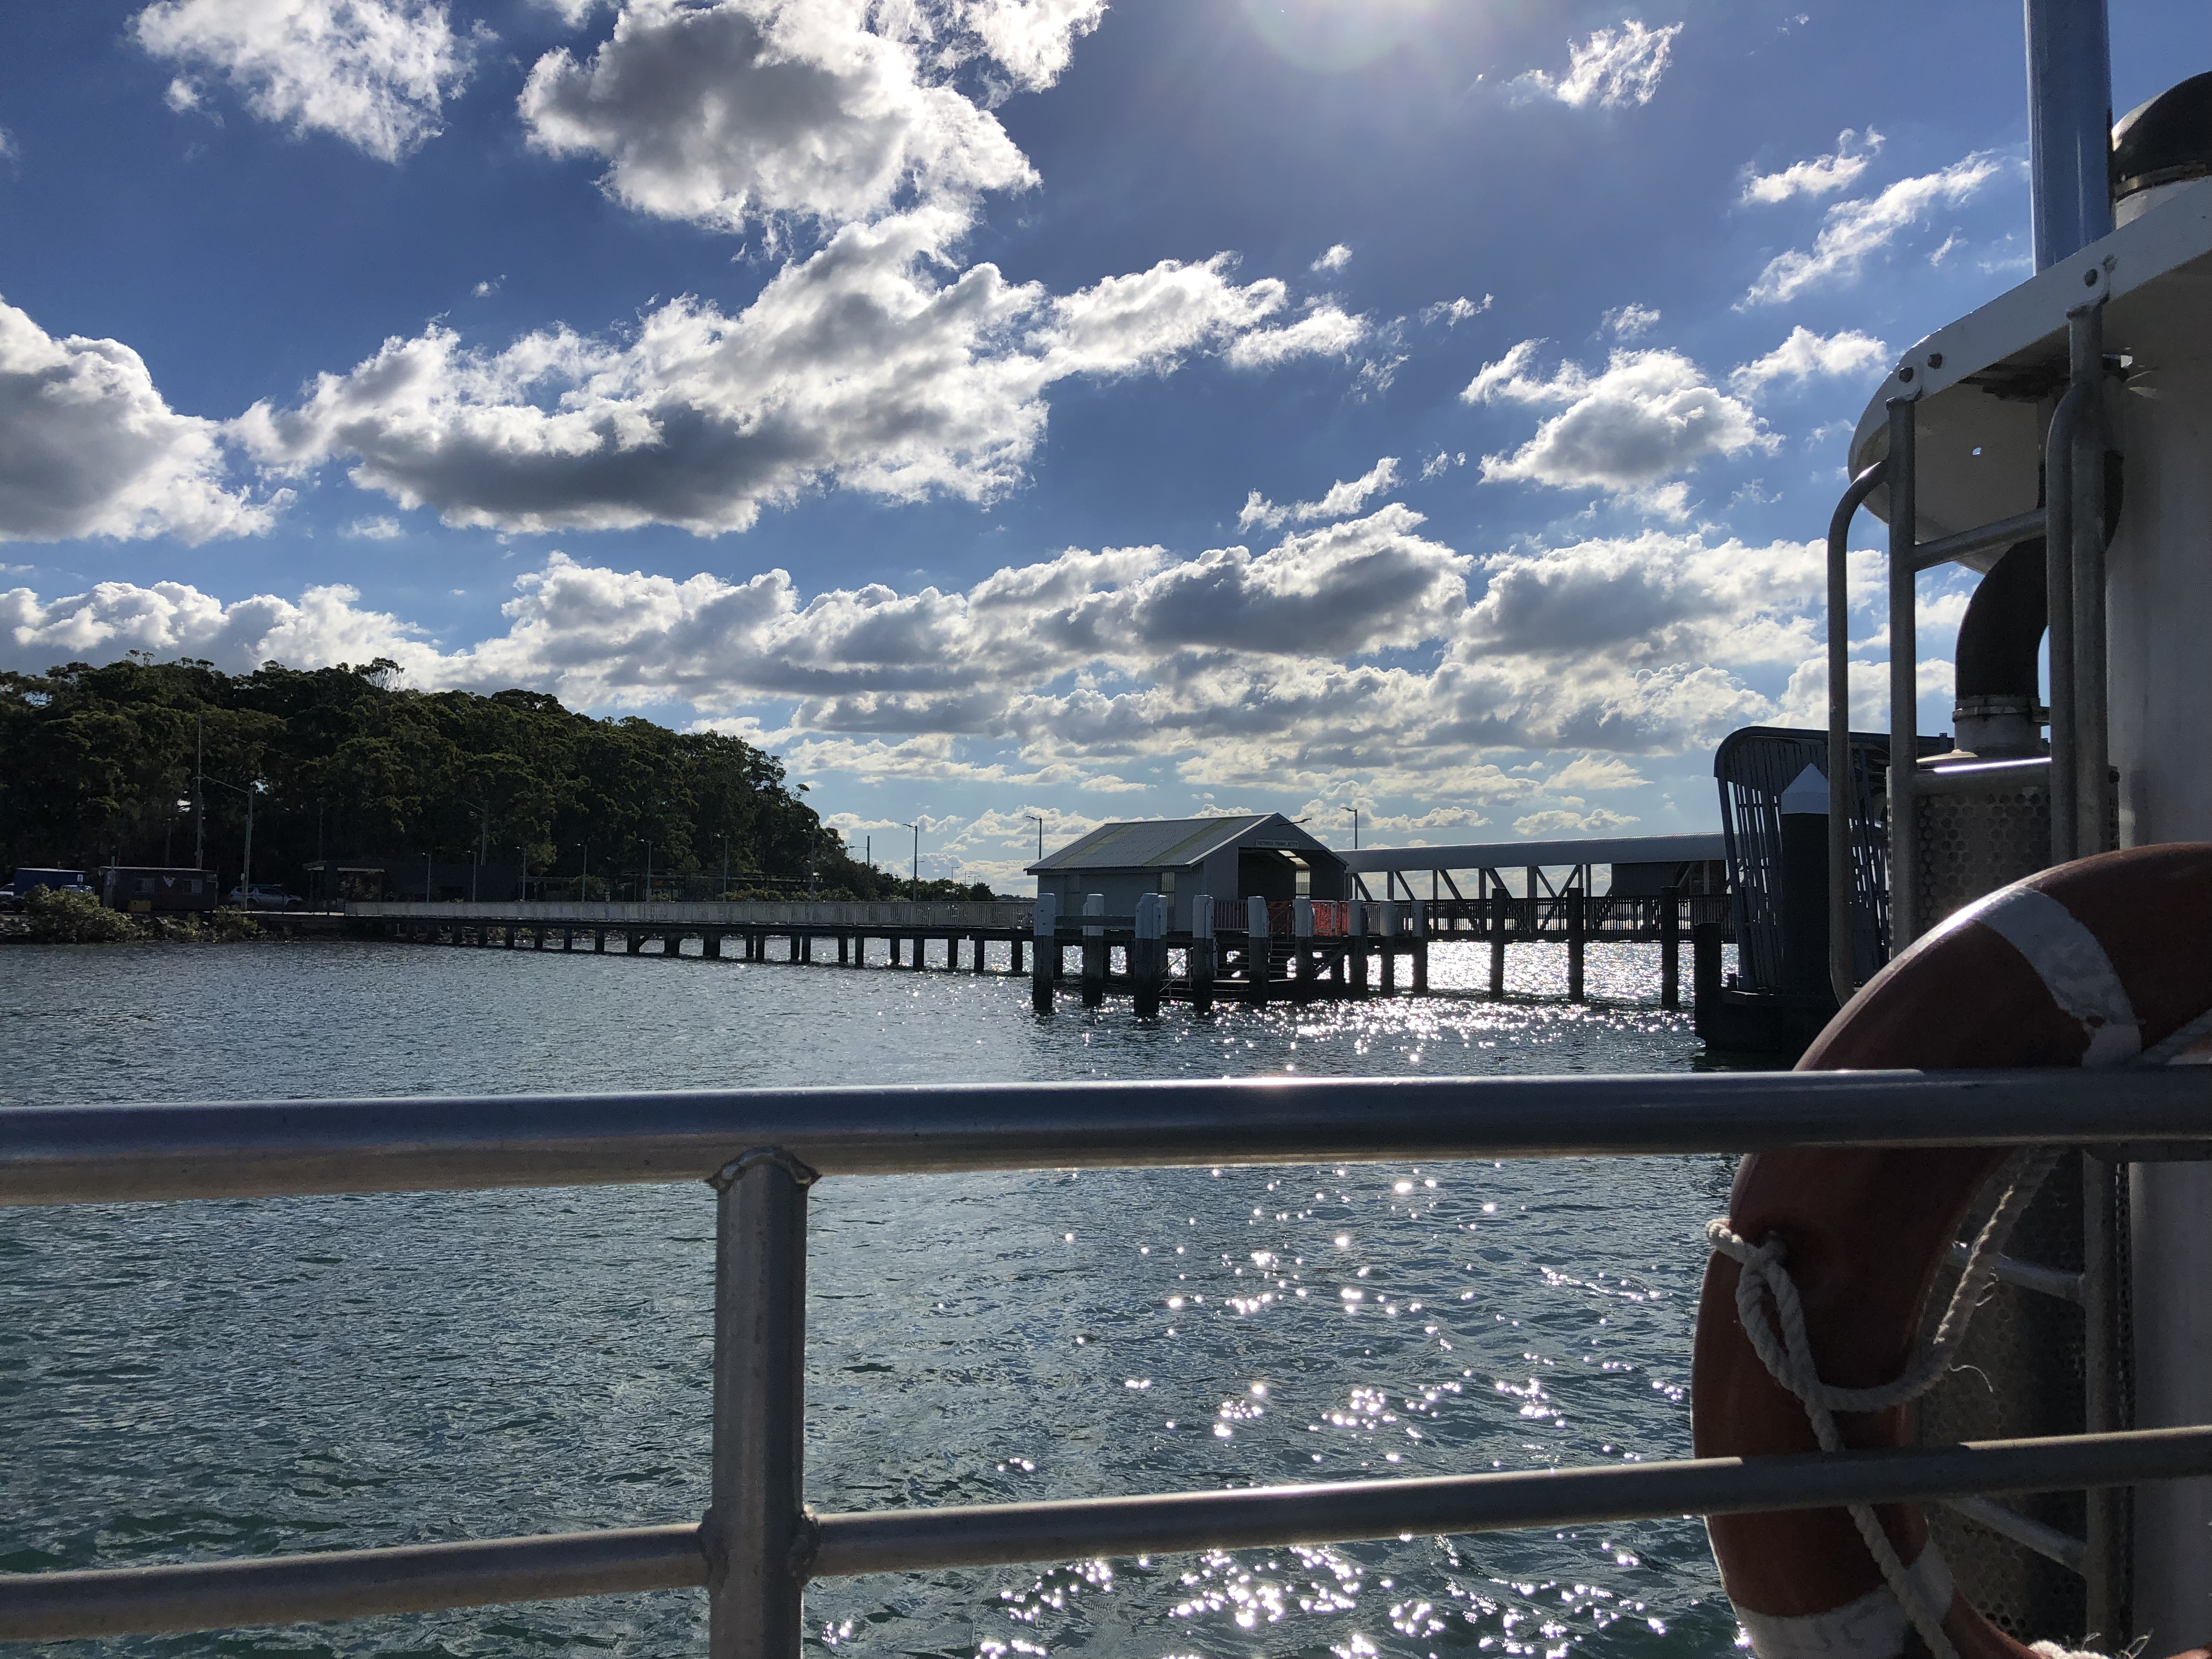 Catching ferry to Moreton Bay